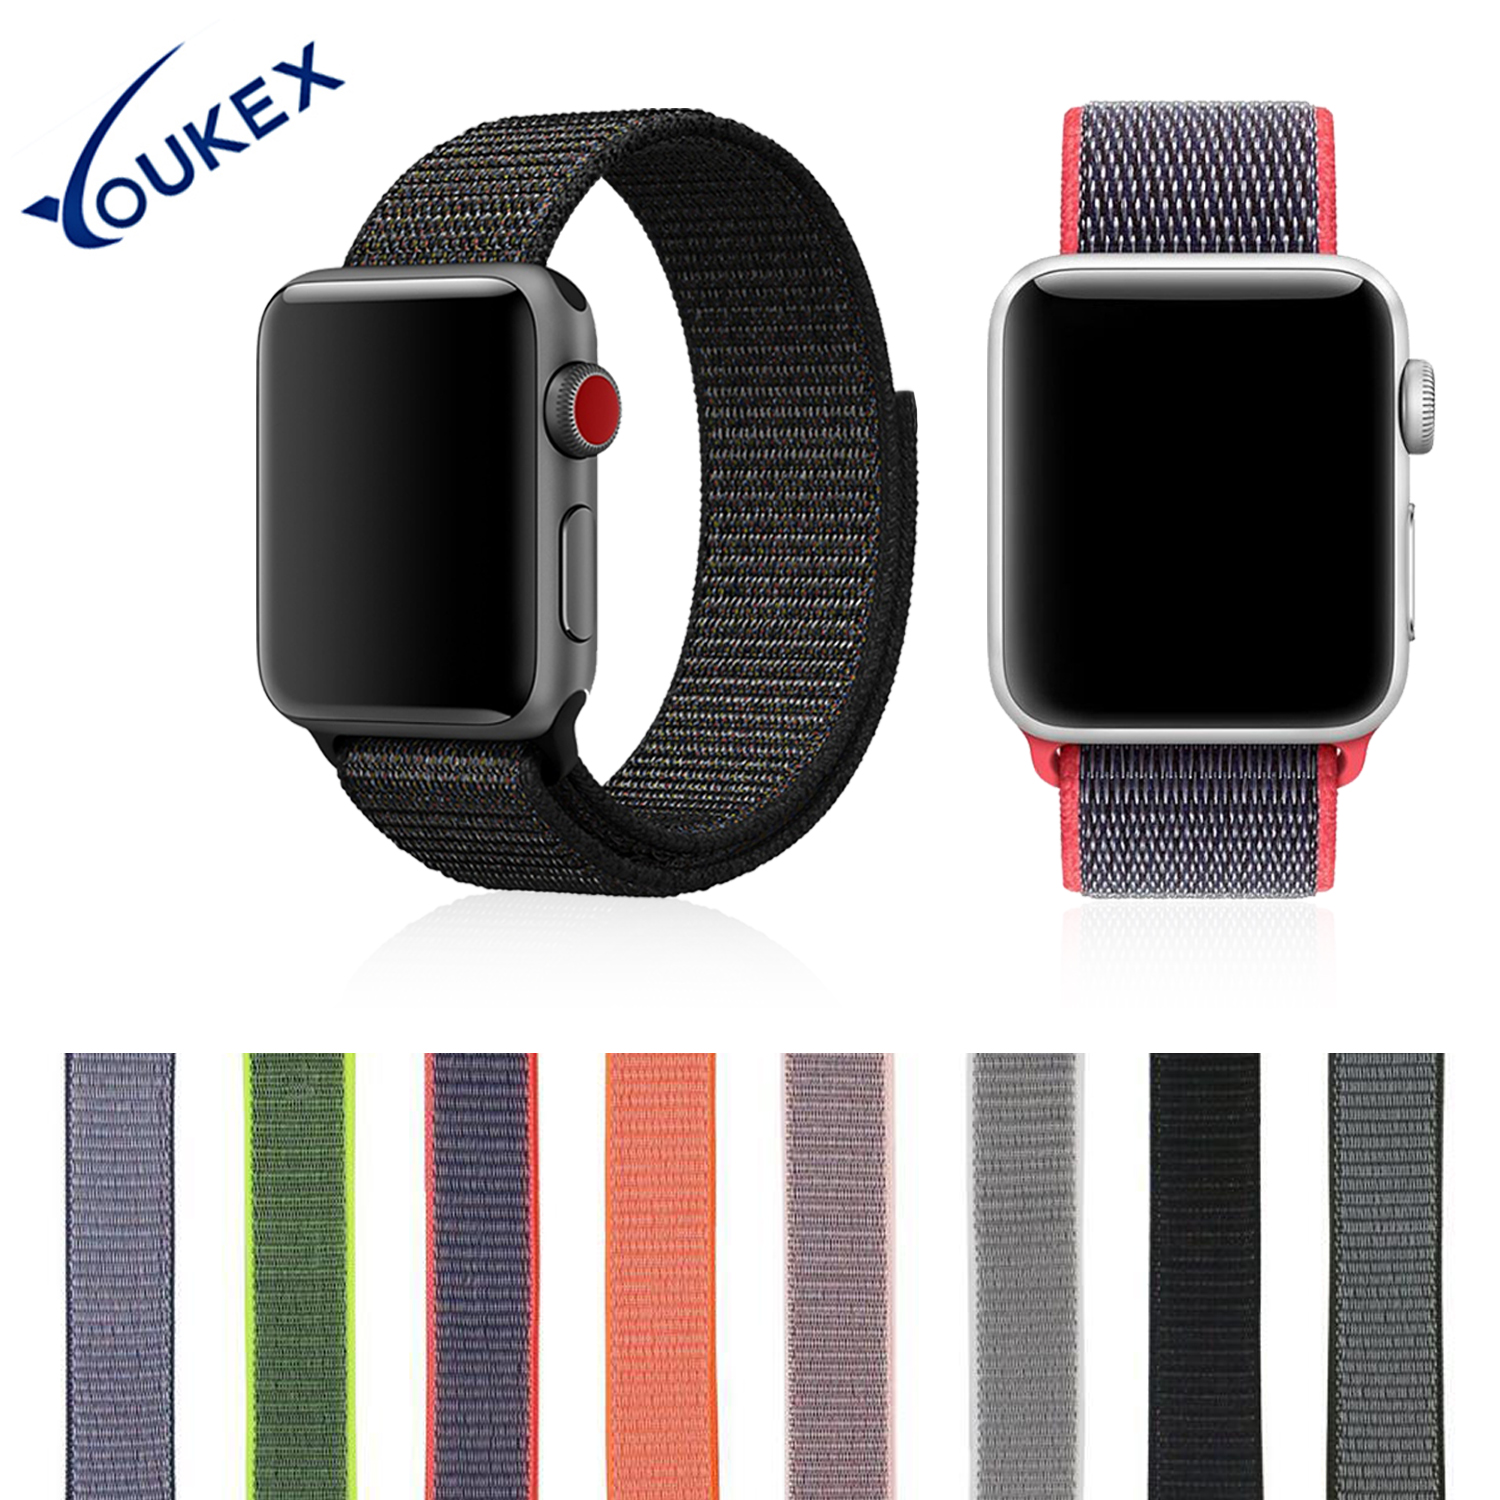 YOUKEX Nylon Sport Band for Apple Watch 38mm 42mm Replacement Wrist Soft Breathable Band Bracelet For iwatch Series 1 & 2 & 3